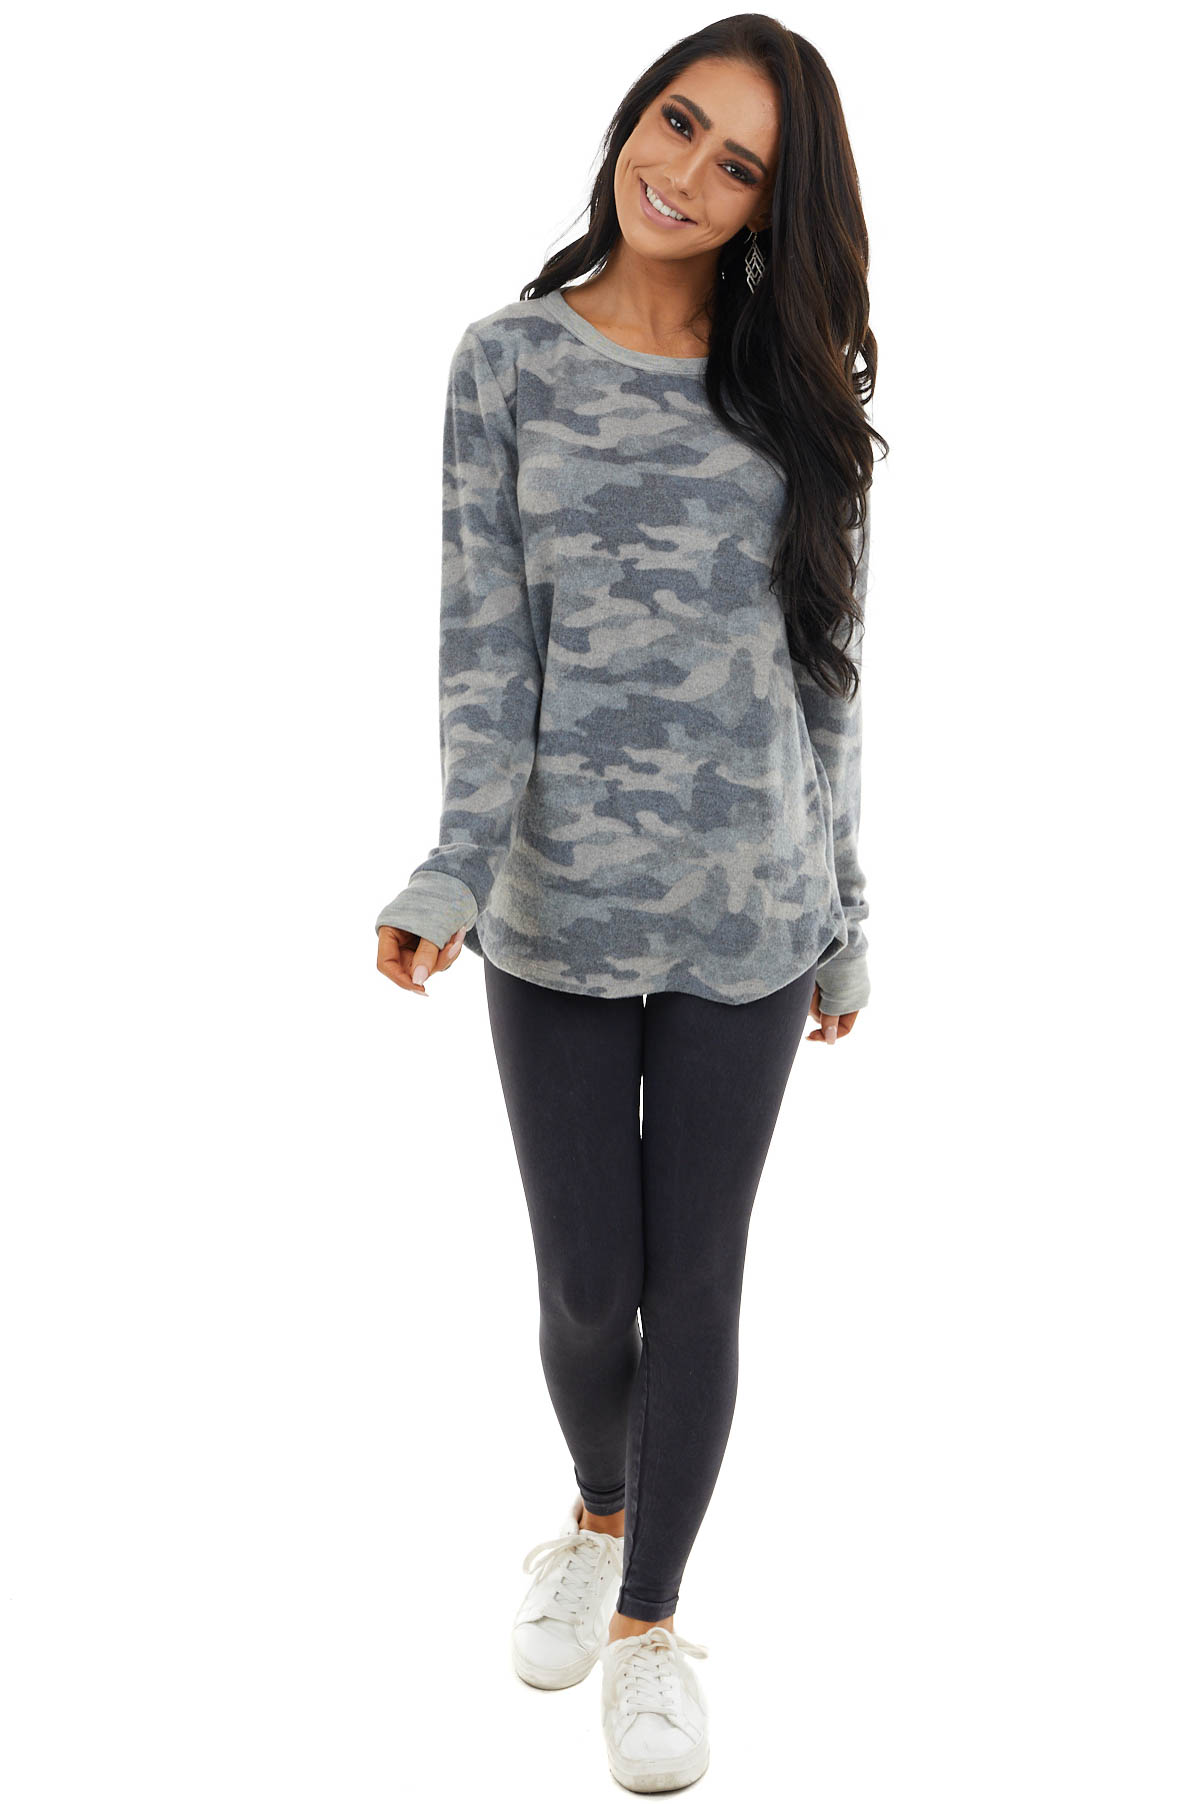 Ash Camo Print Brushed Knit Top with Long Sleeves